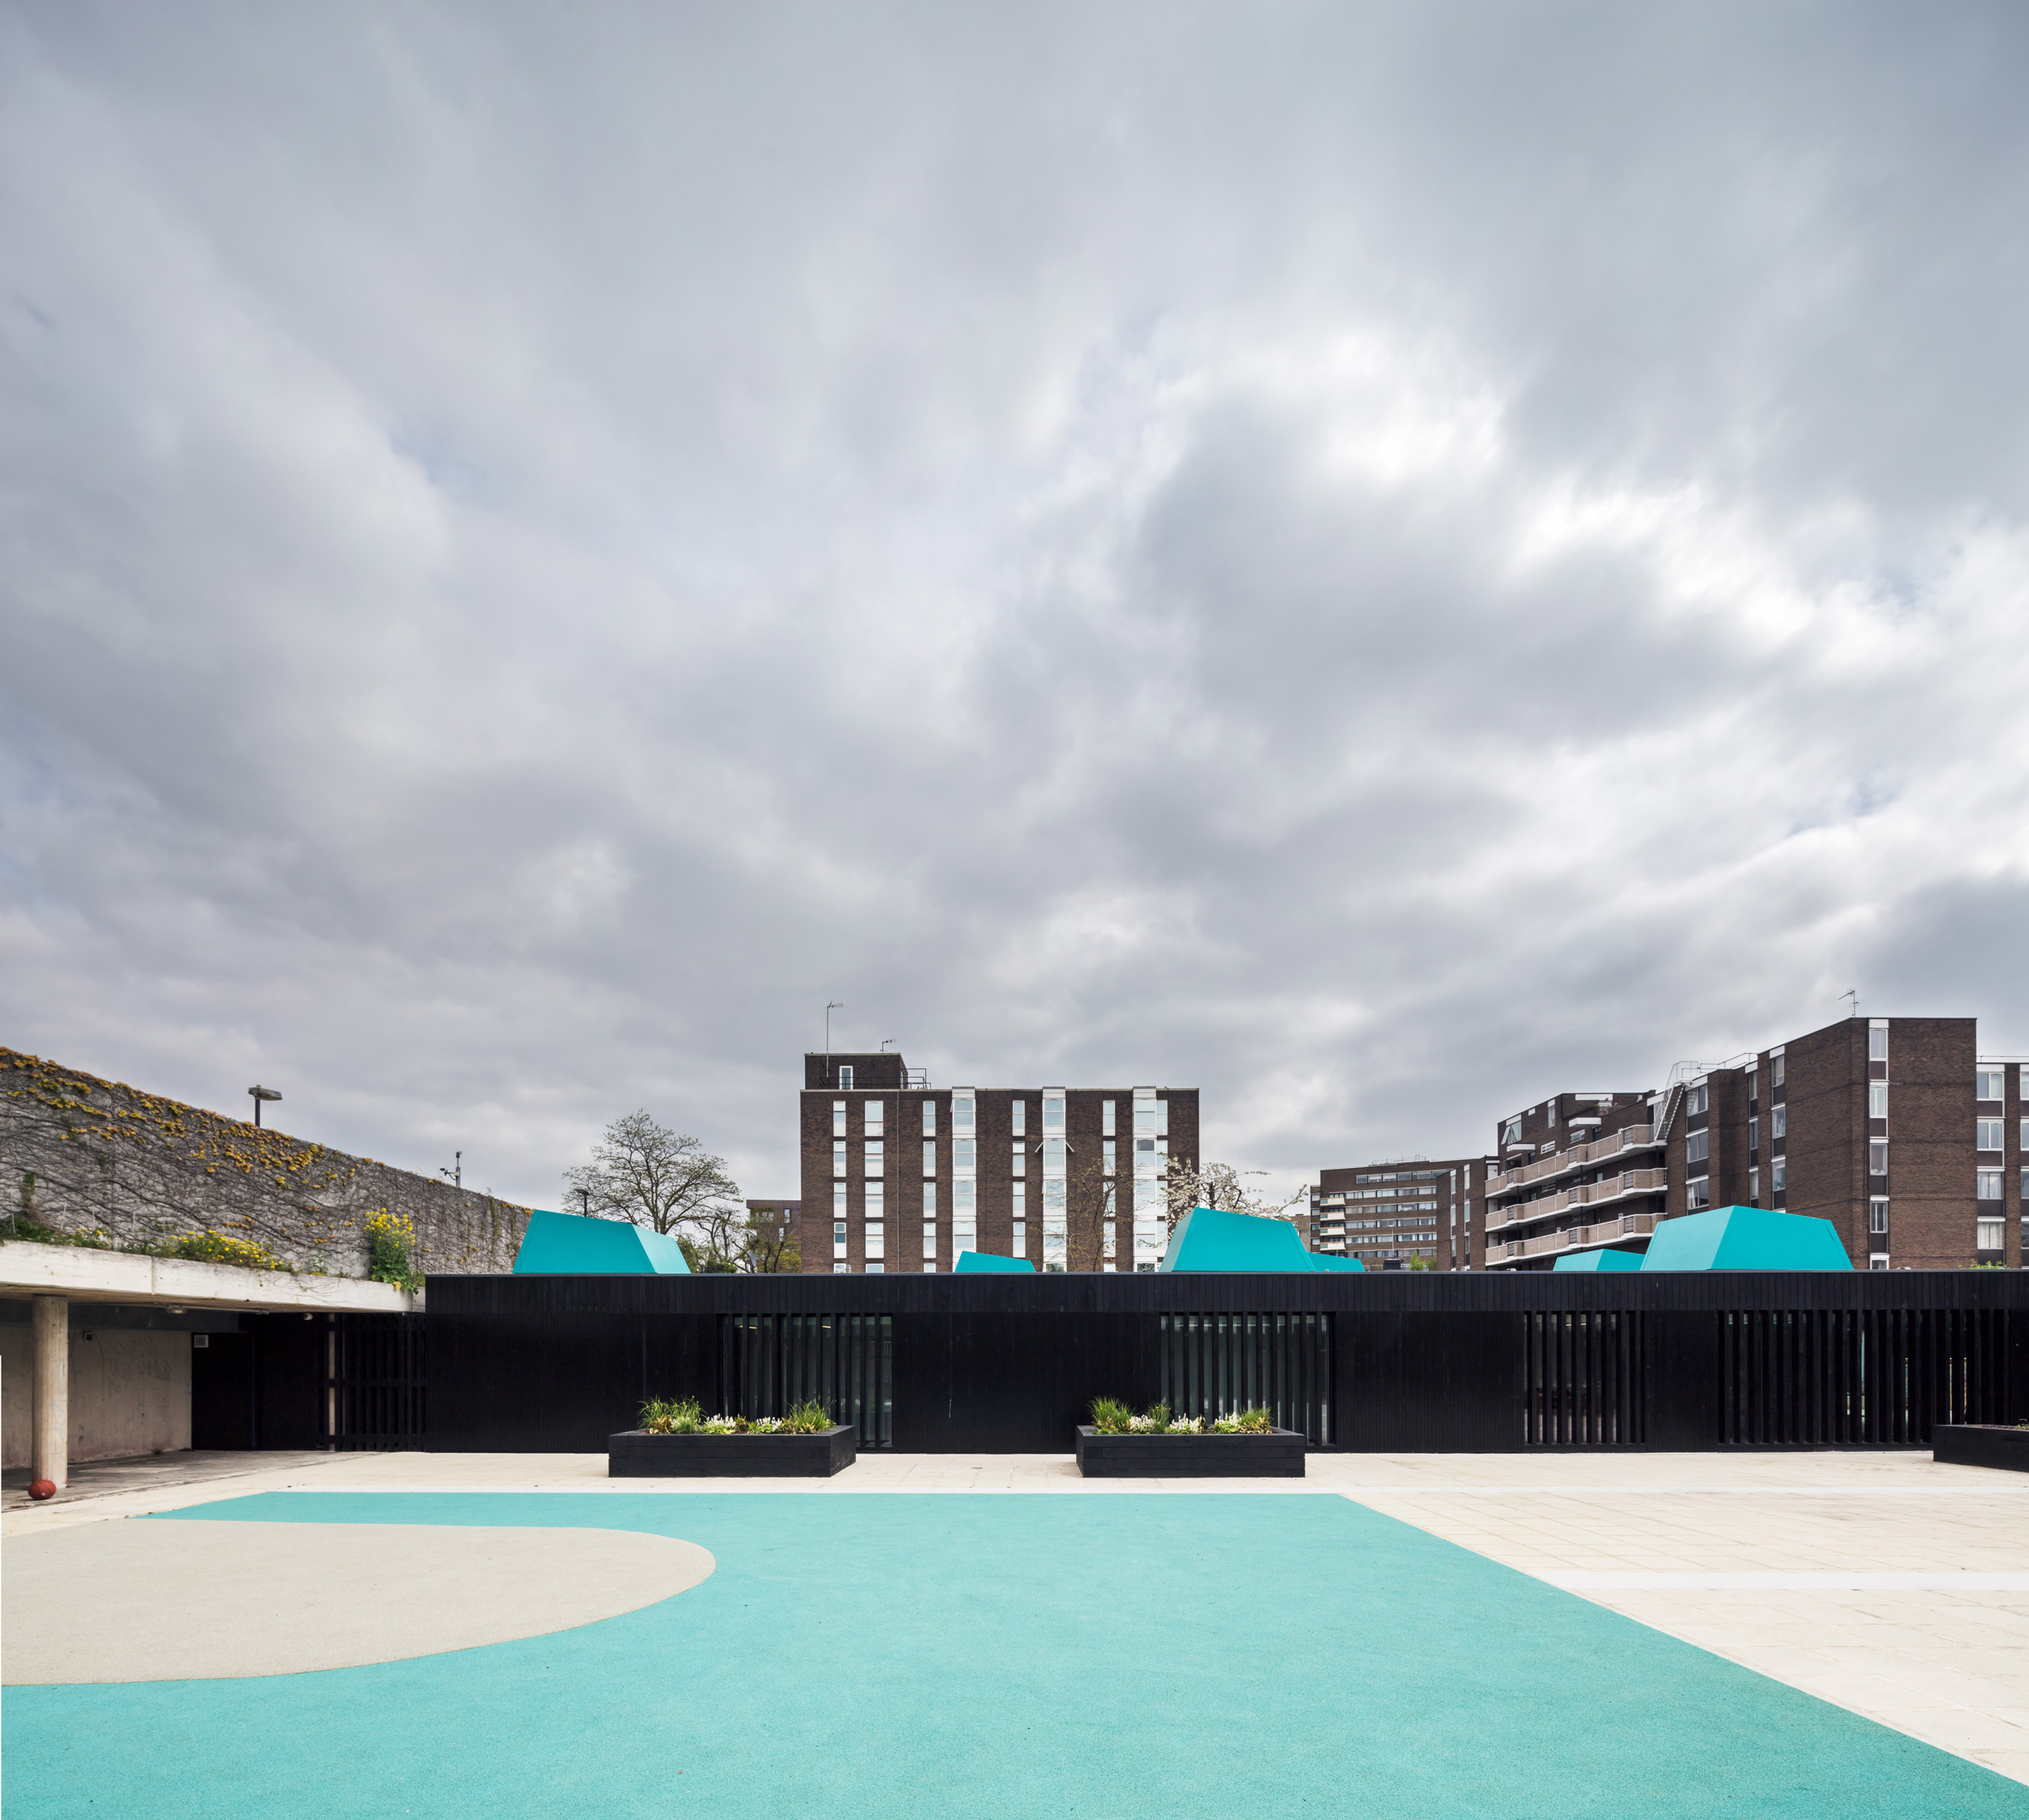 Haverstock extends school on London's modernist Alexandra Road Estate